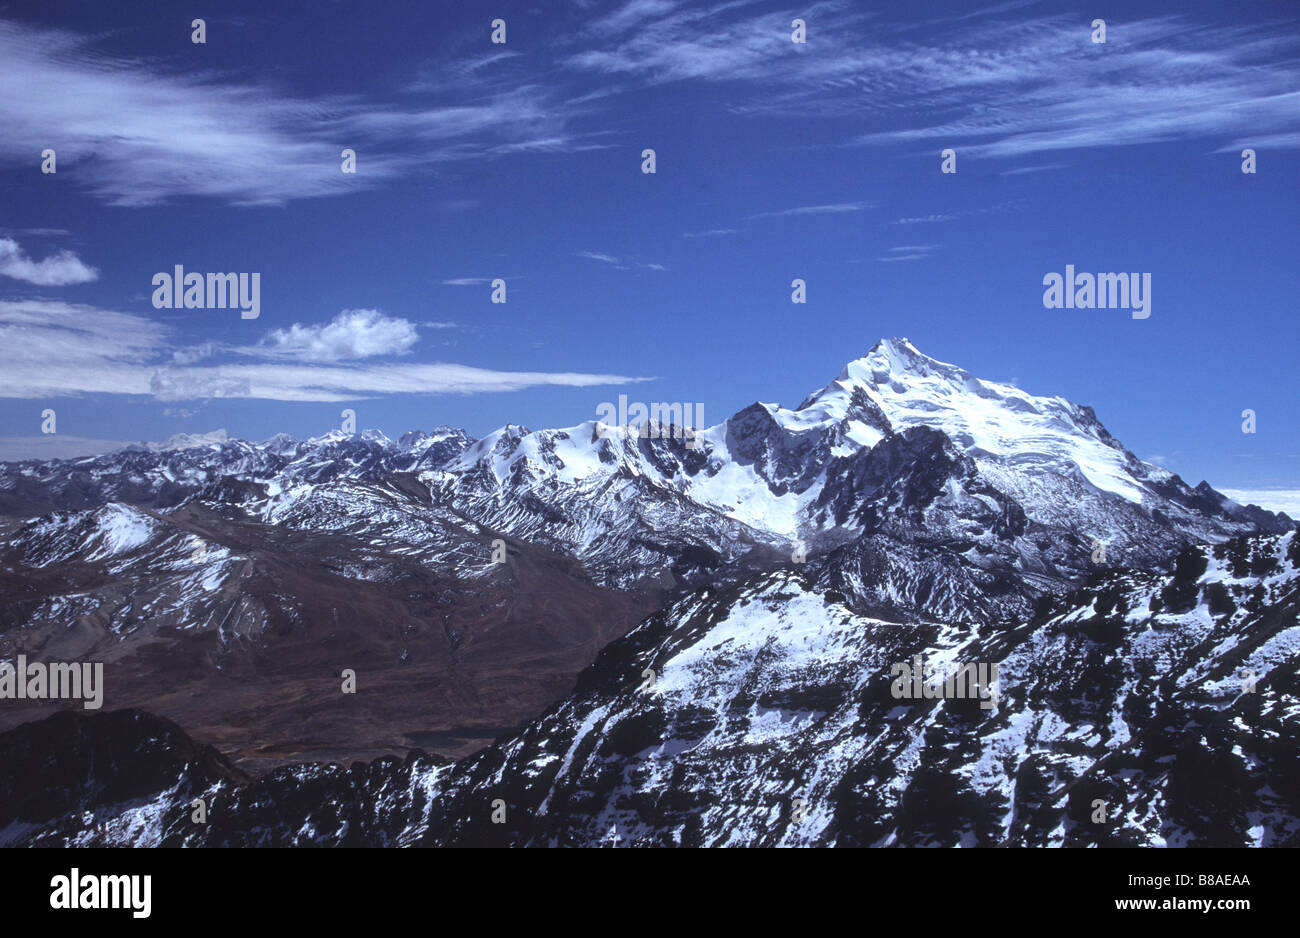 Mt Huayna Potosi and northern part of Cordillera Real, seen from Mt Chacaltaya, Bolivia - Stock Image